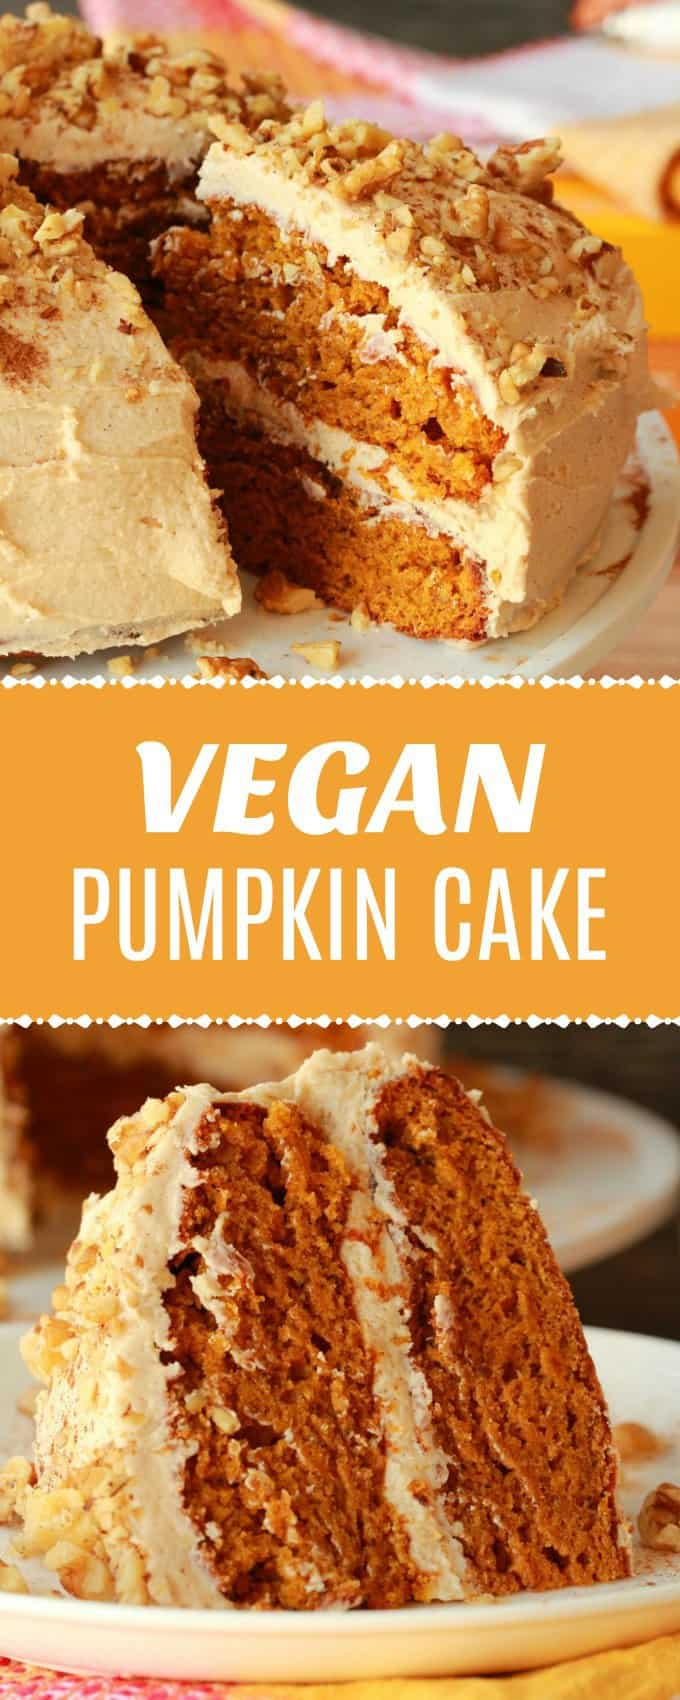 Perfectly moist and utterly delicious vegan pumpkin cake with a cinnamon buttercream frosting. Spicy and colorful and ideal for any special occasion! | lovingitvegan.com